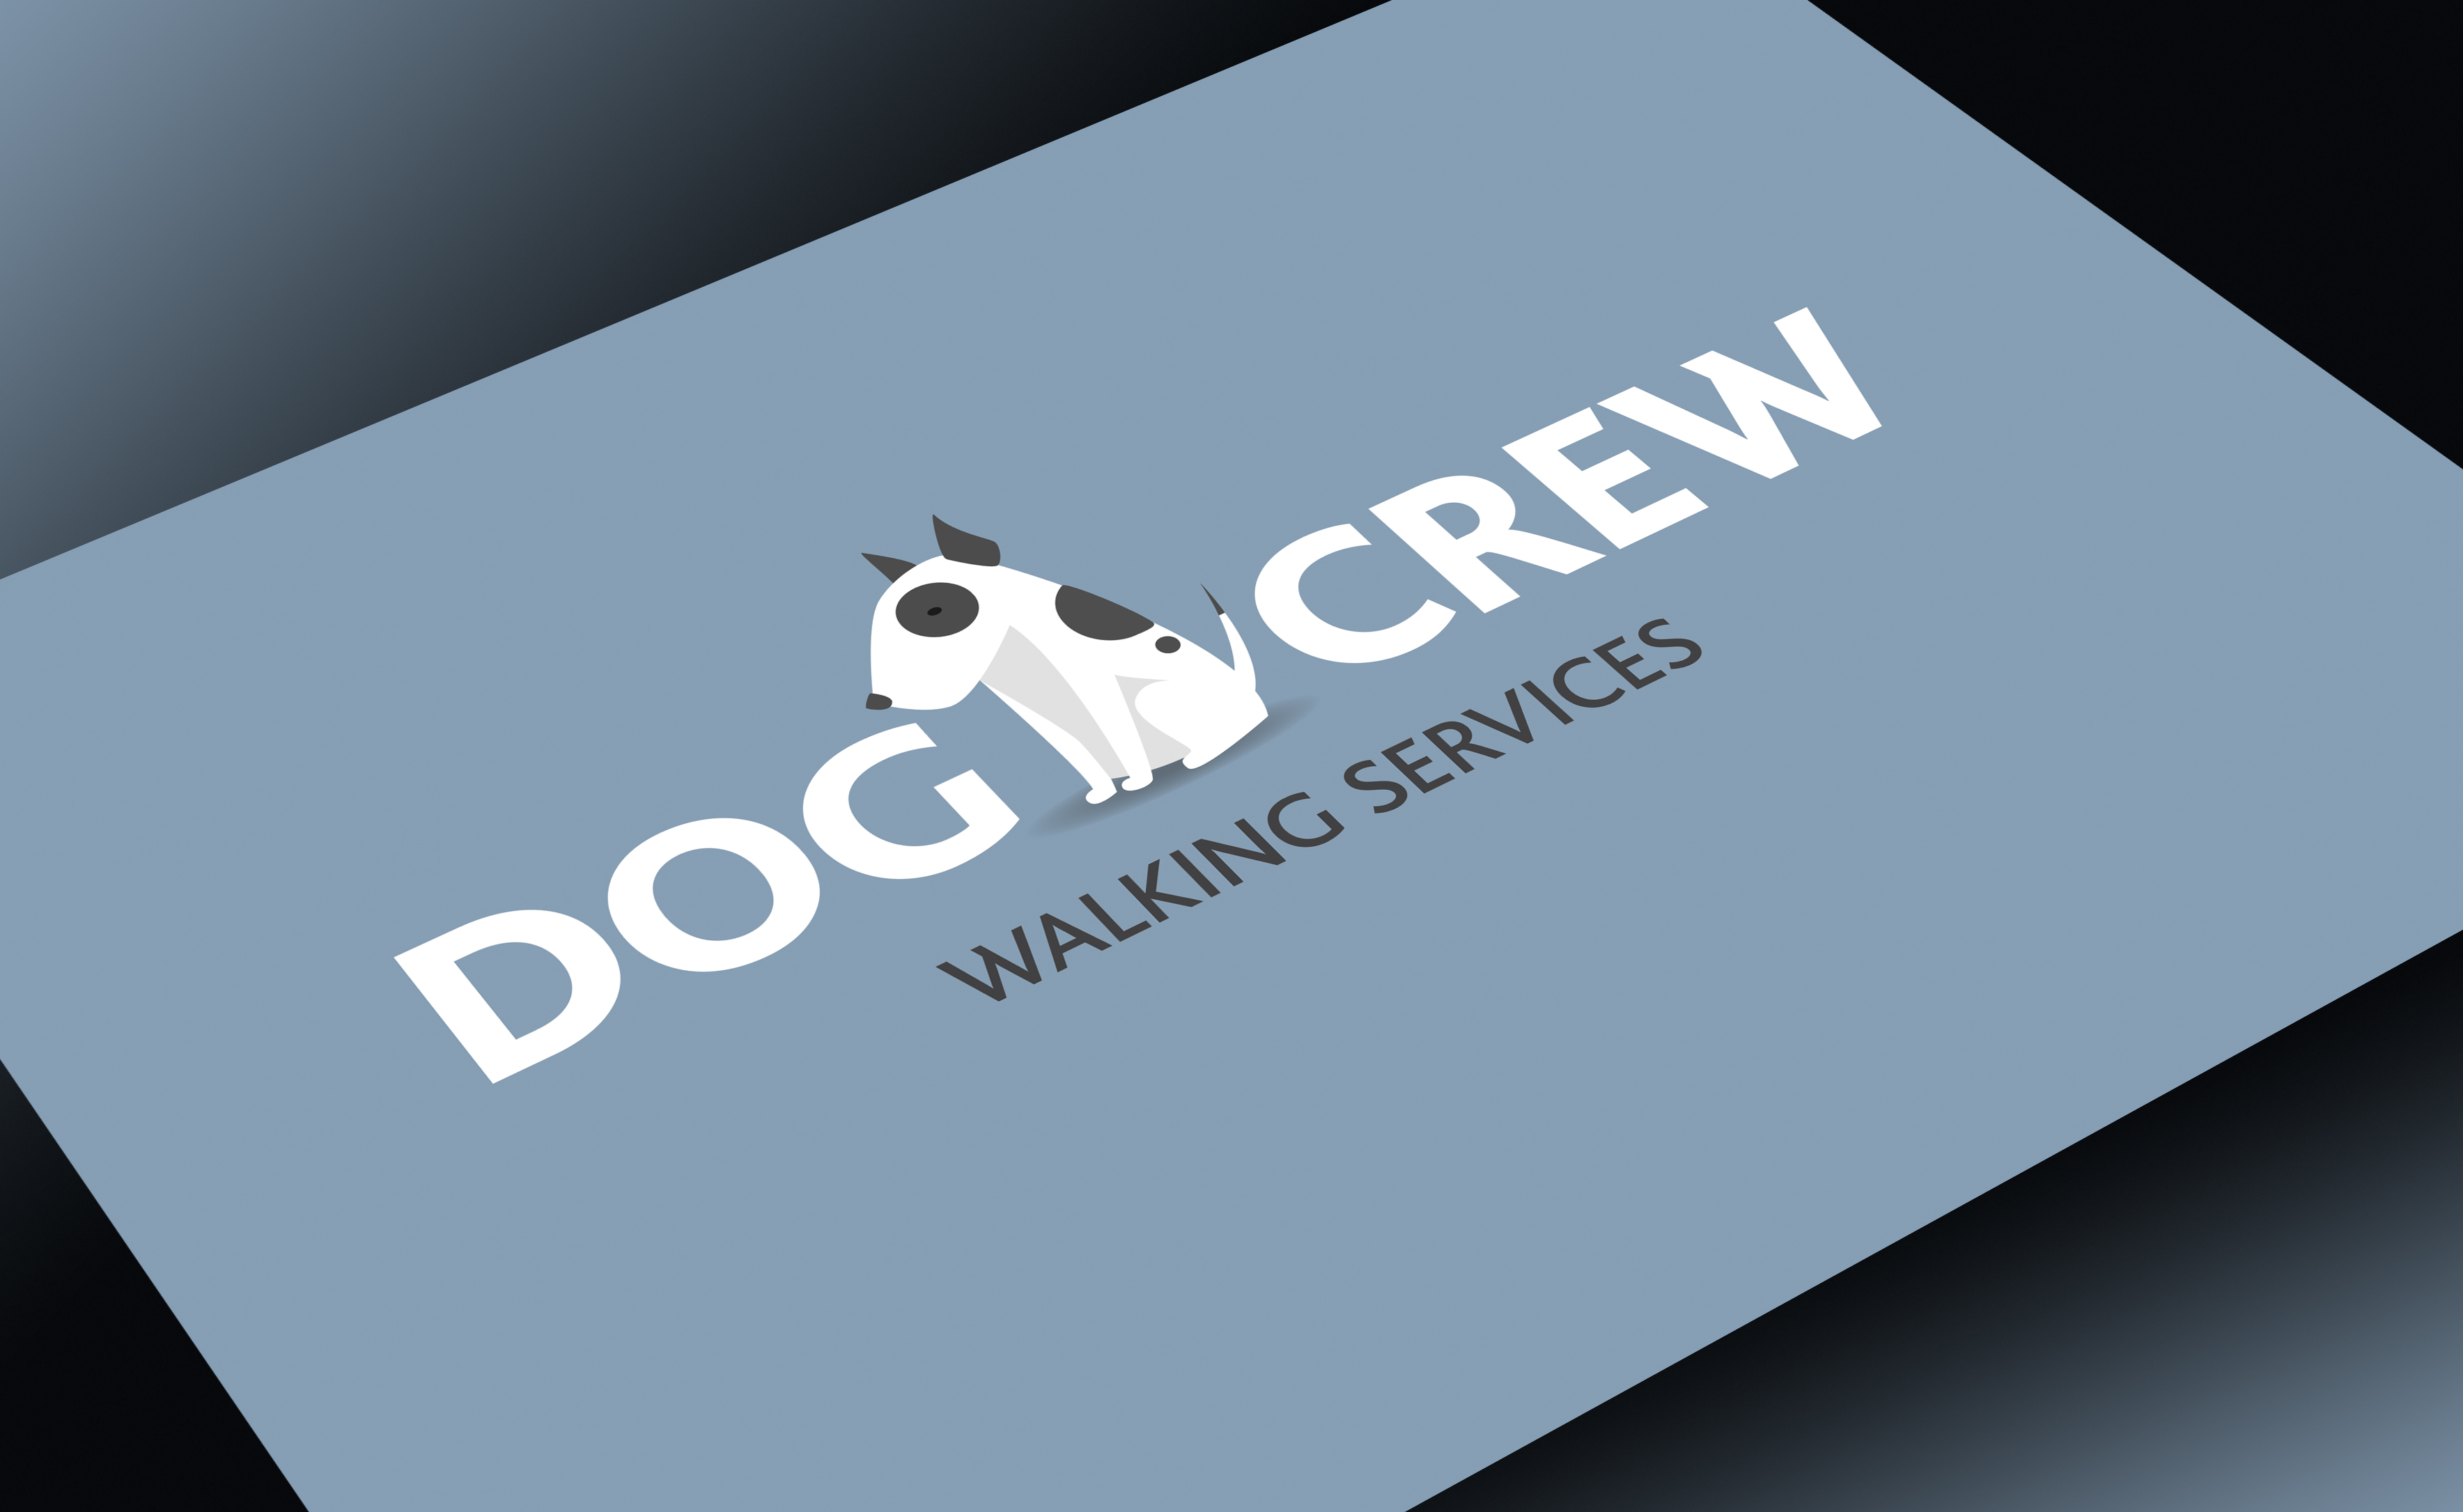 Dog Crew Walking Services